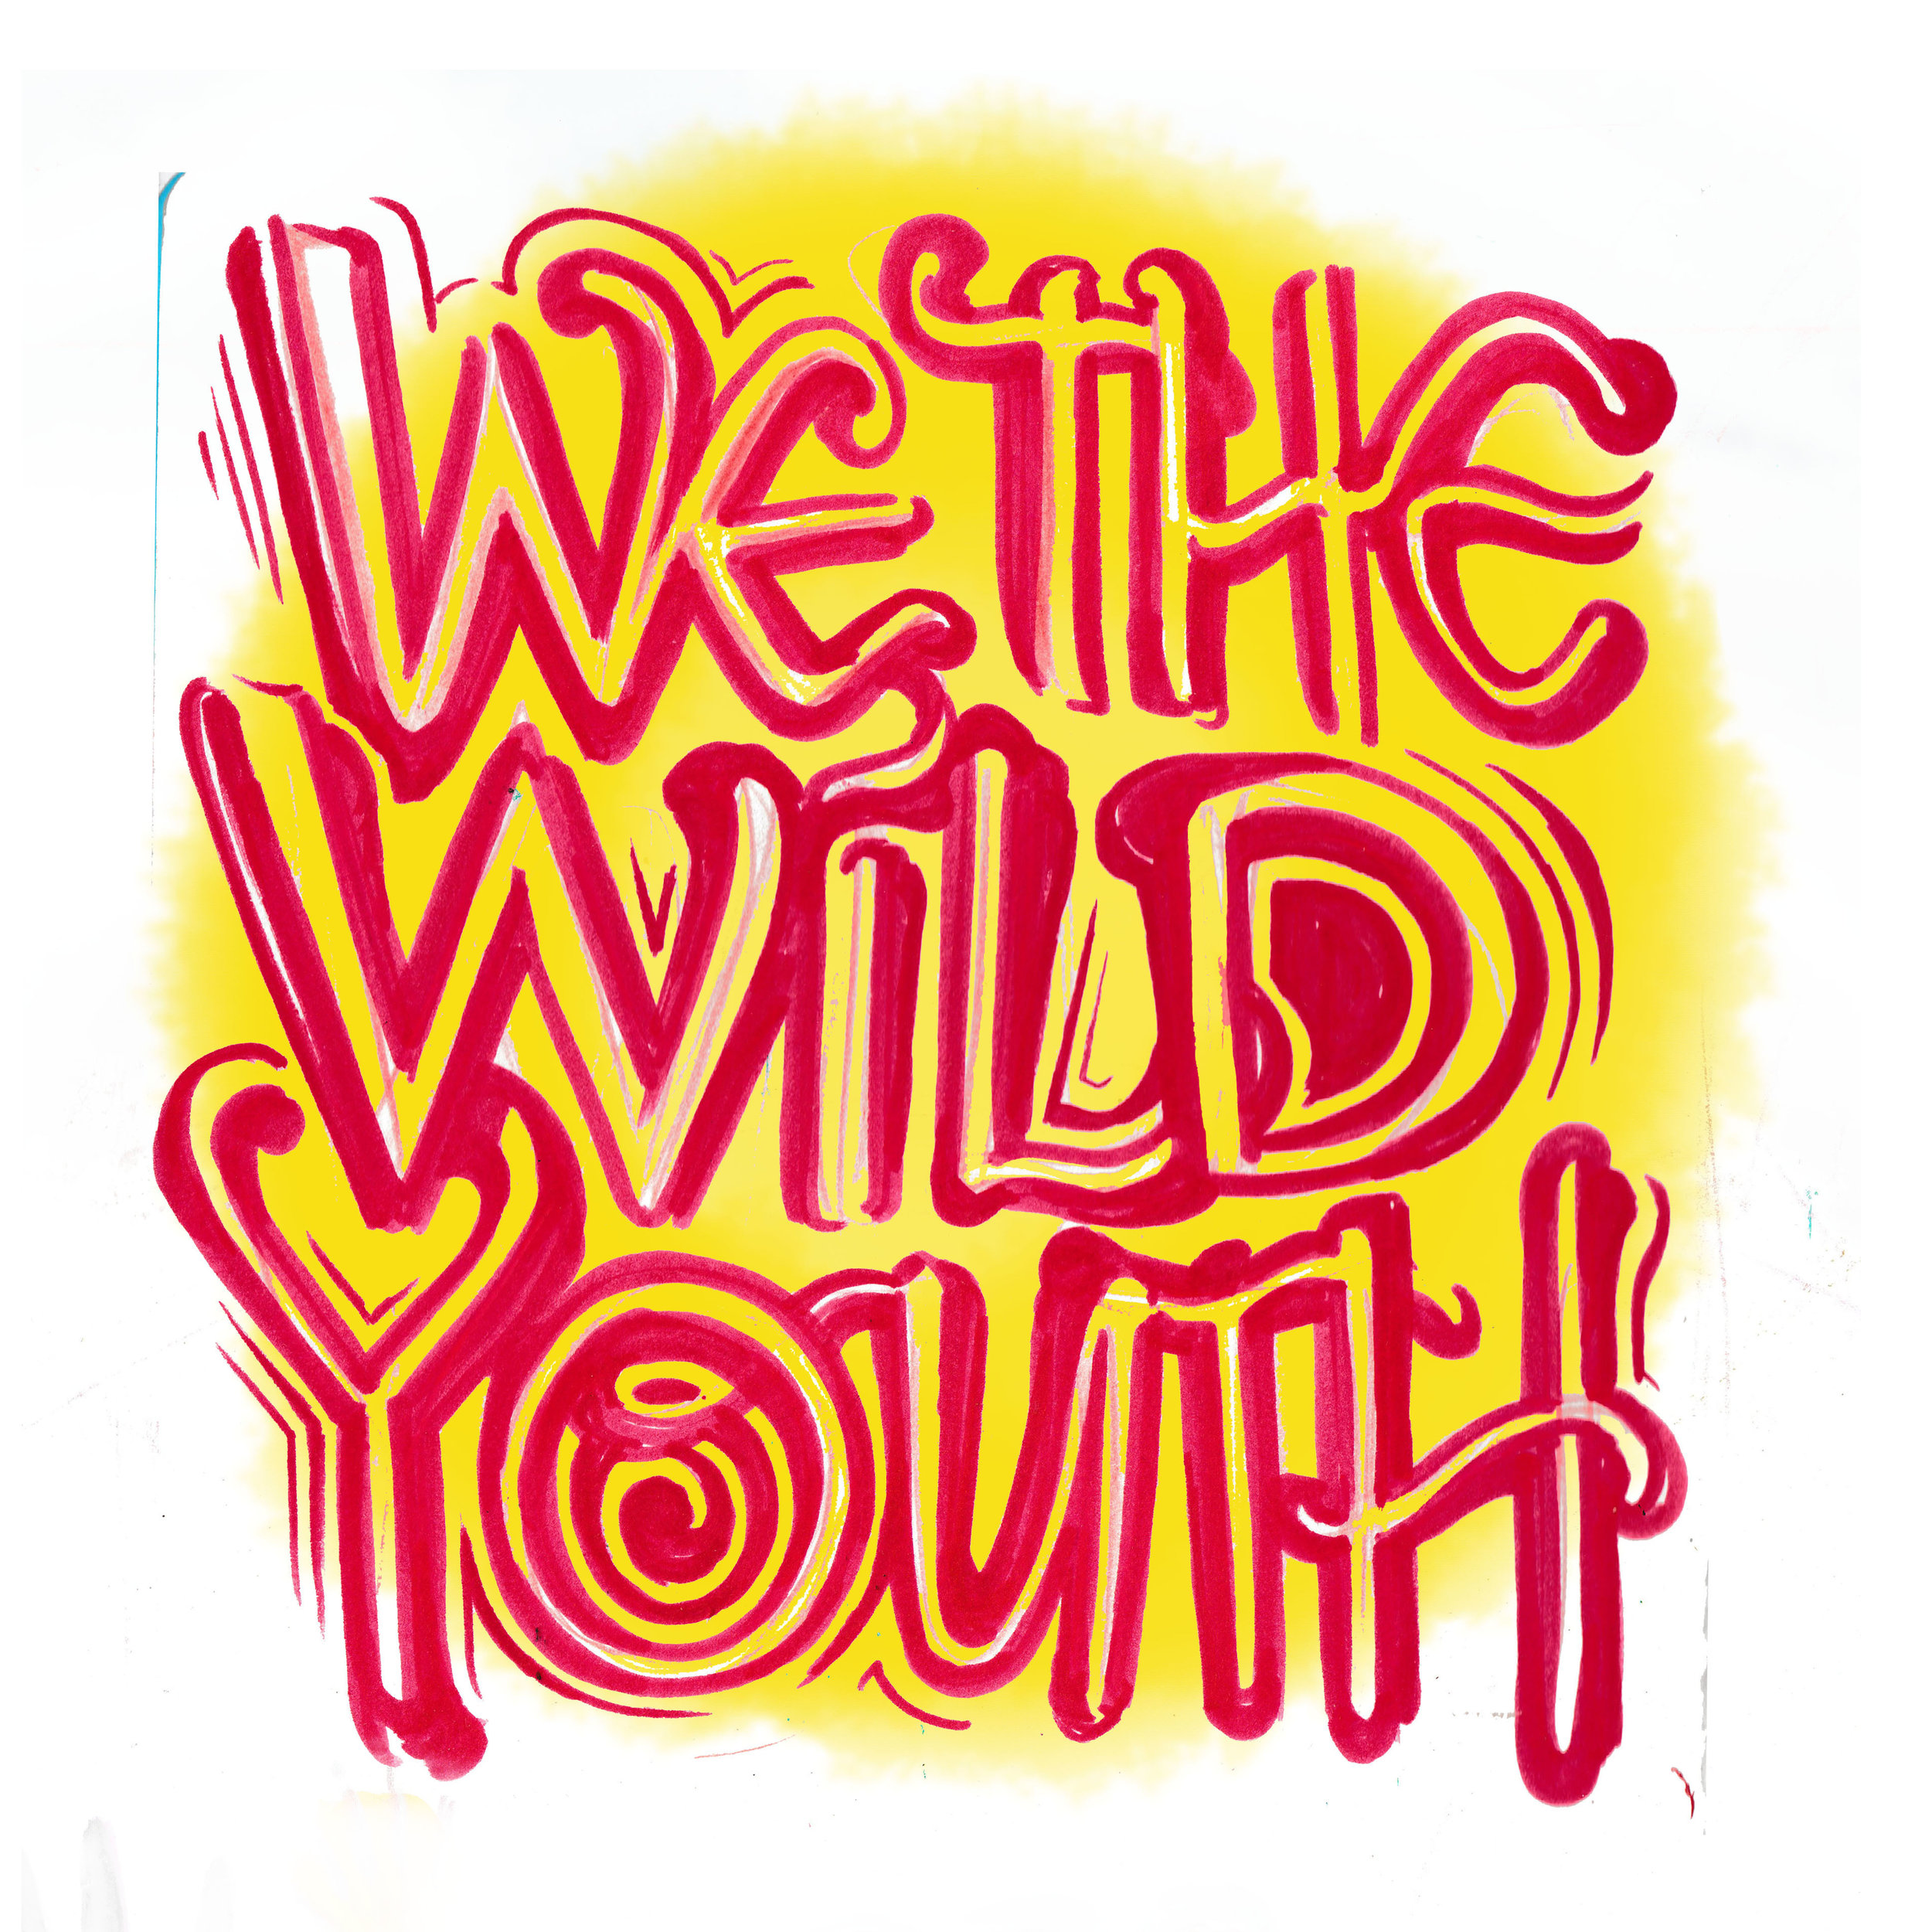 We_The_Wild_Youth_Typography.jpg